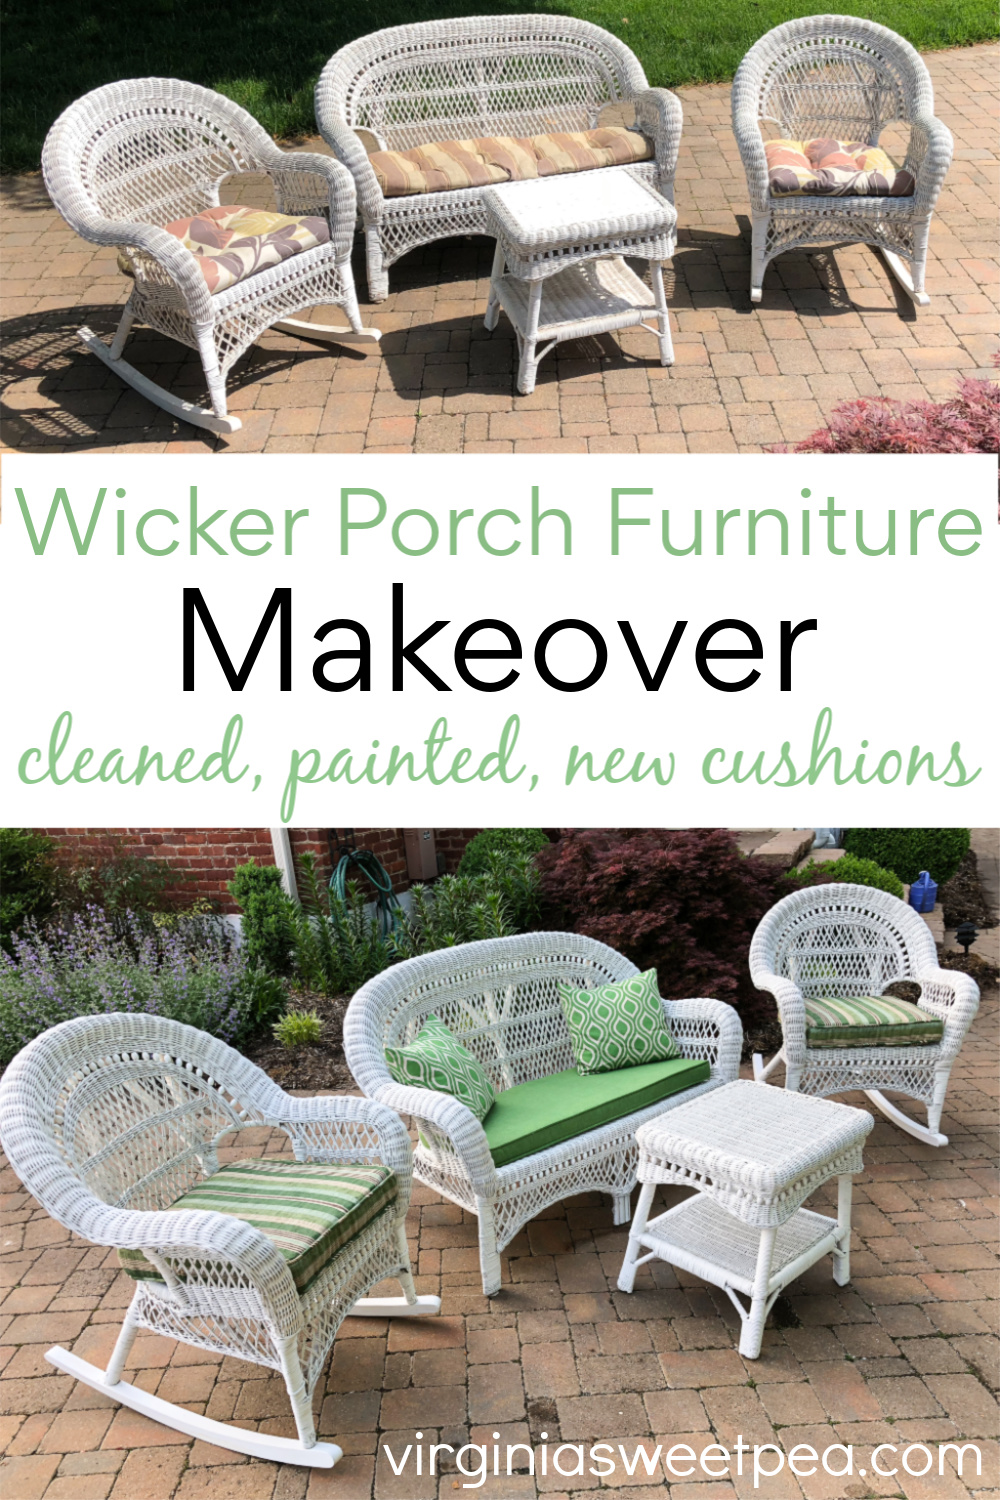 Wicker Porch Furniture Makeover - A set of wicker porch furniture gets a makeover with a good cleaning, fresh paint, and new cushions. See how easy it is to give wicker furniture a fresh look. #wickerfurnituremakeover #wickerporchfurnituremakeover #wickerporchfurniture via @spaula